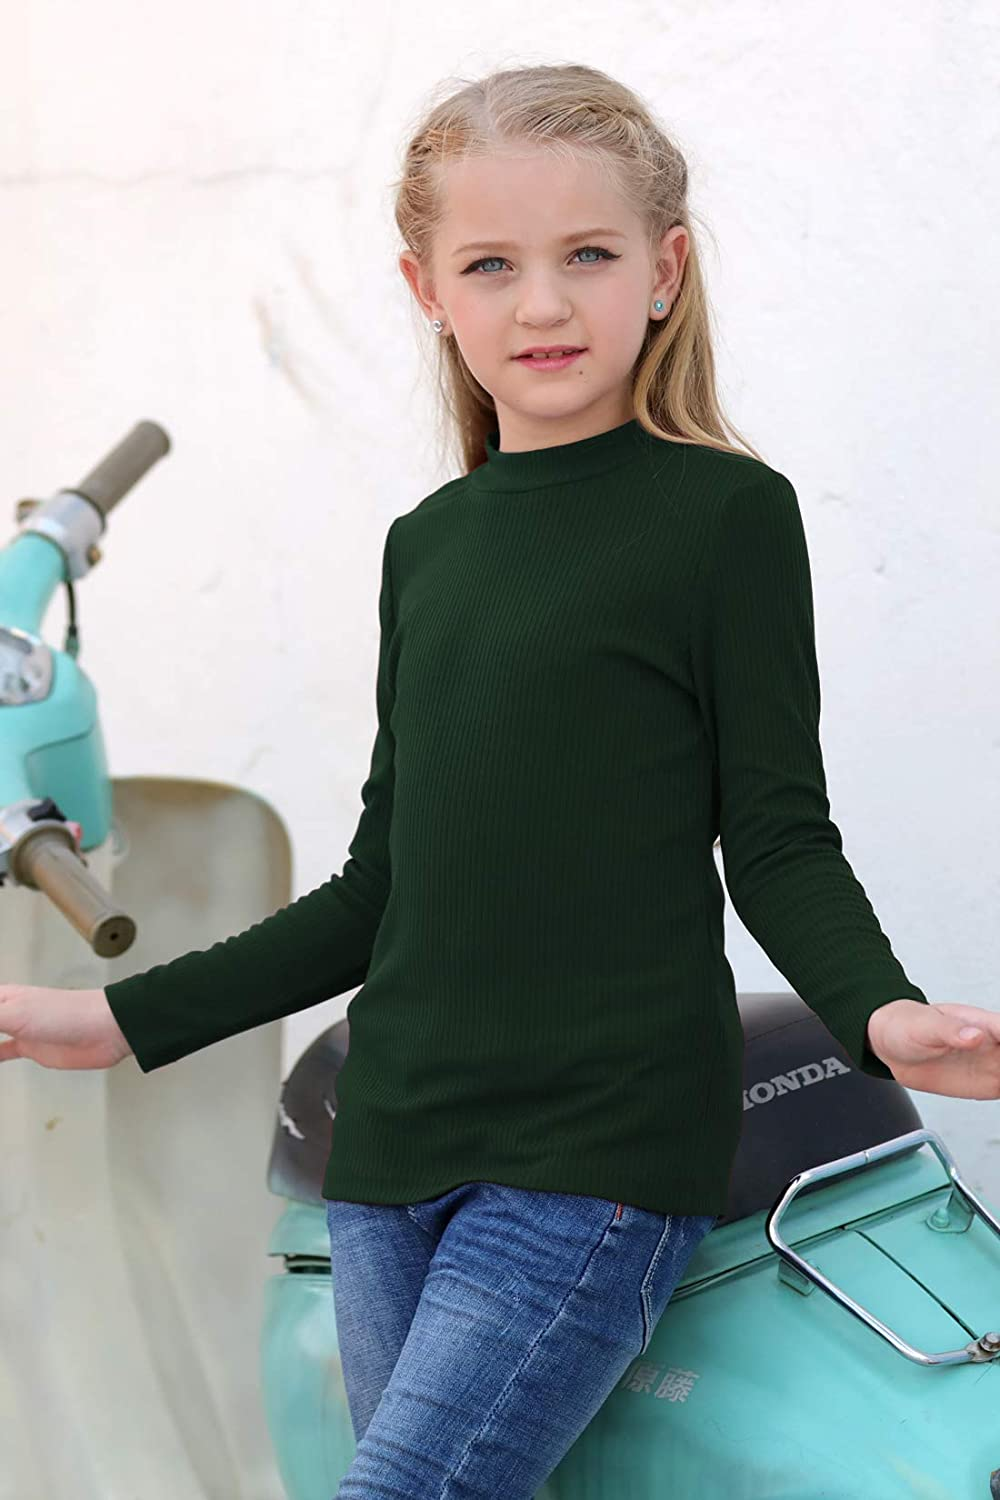 GORLYA Girls Long Sleeve Soft Knit Mock Turtleneck Slim Fit Pullover Sweater Top for 4-14T Kids